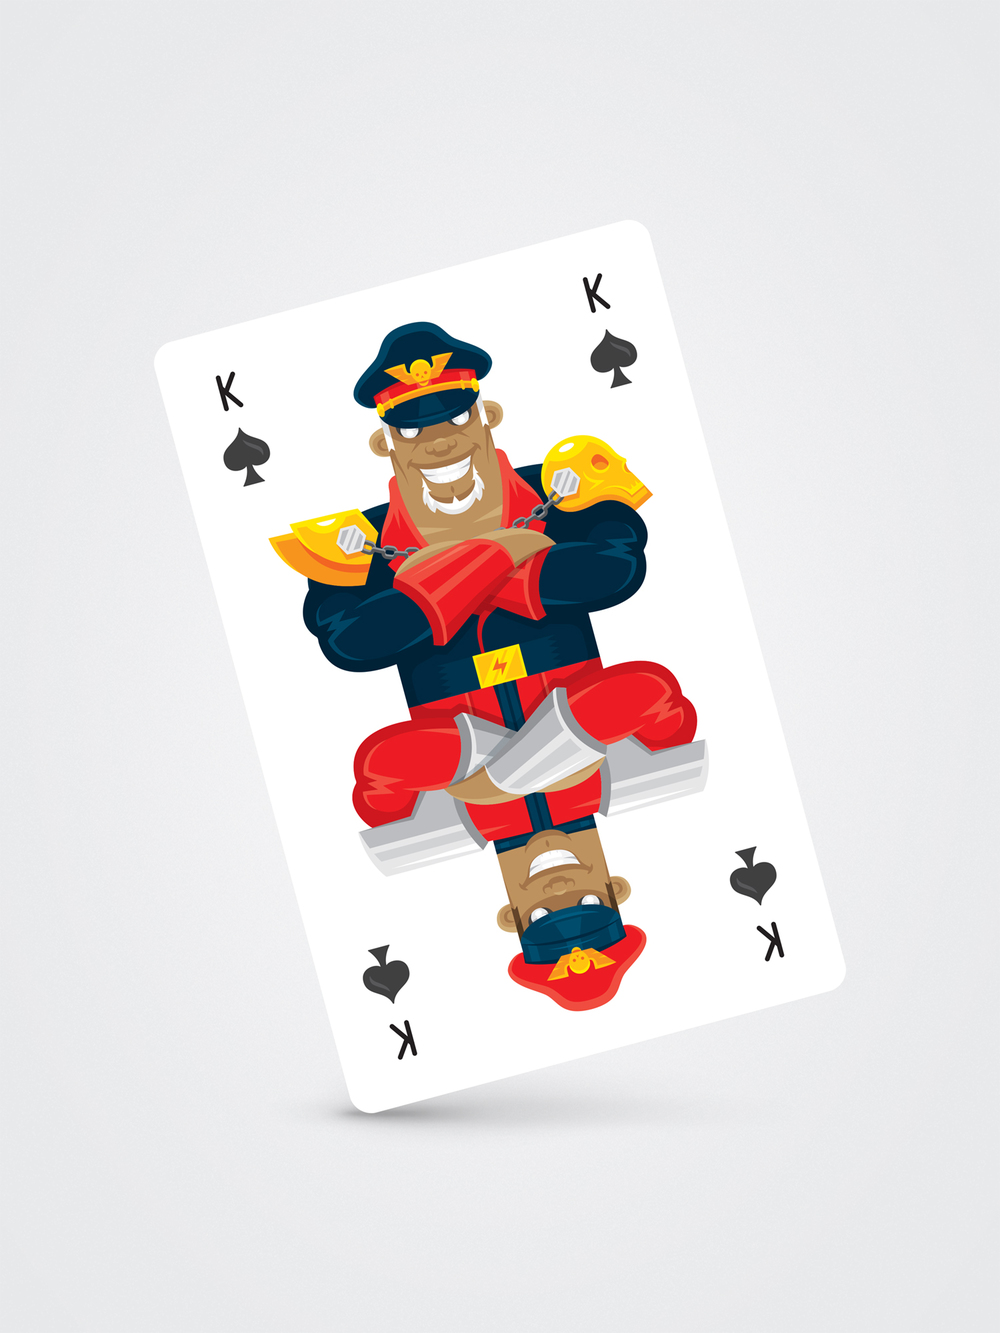 M. Bison – King of SPades